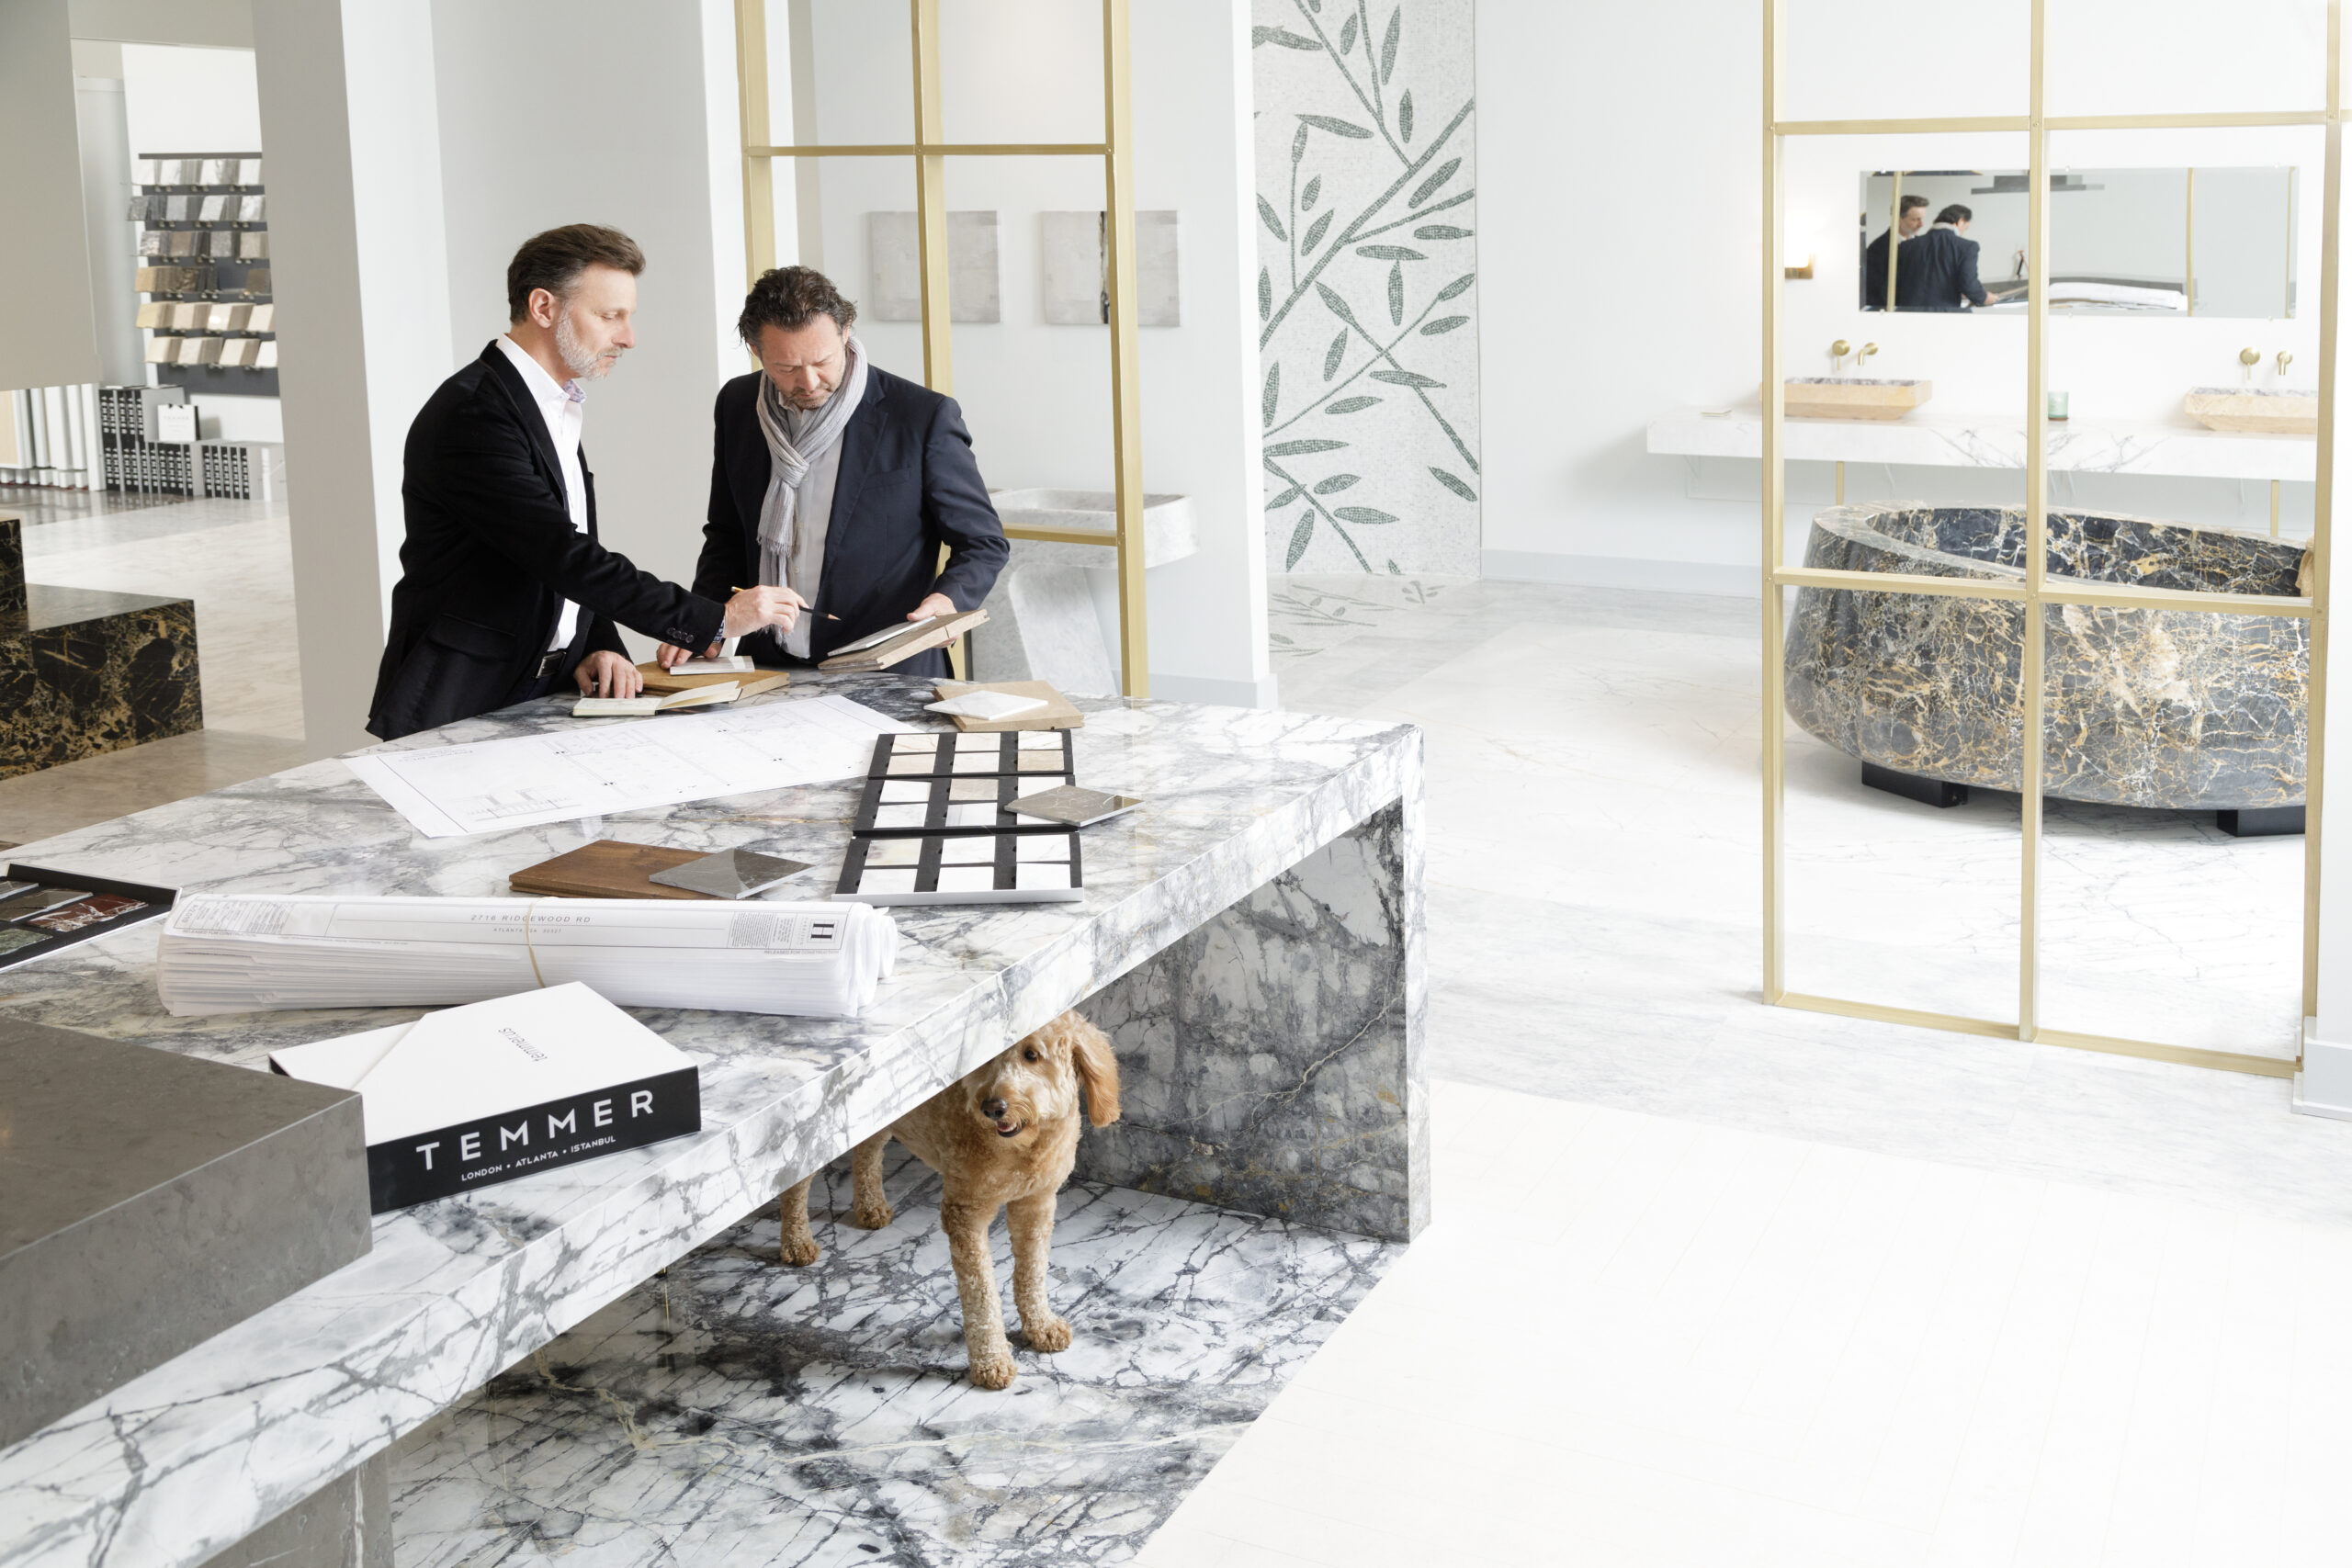 Patrick Heagney photographs two designers in a bright and airy marble room for Temmer Marble